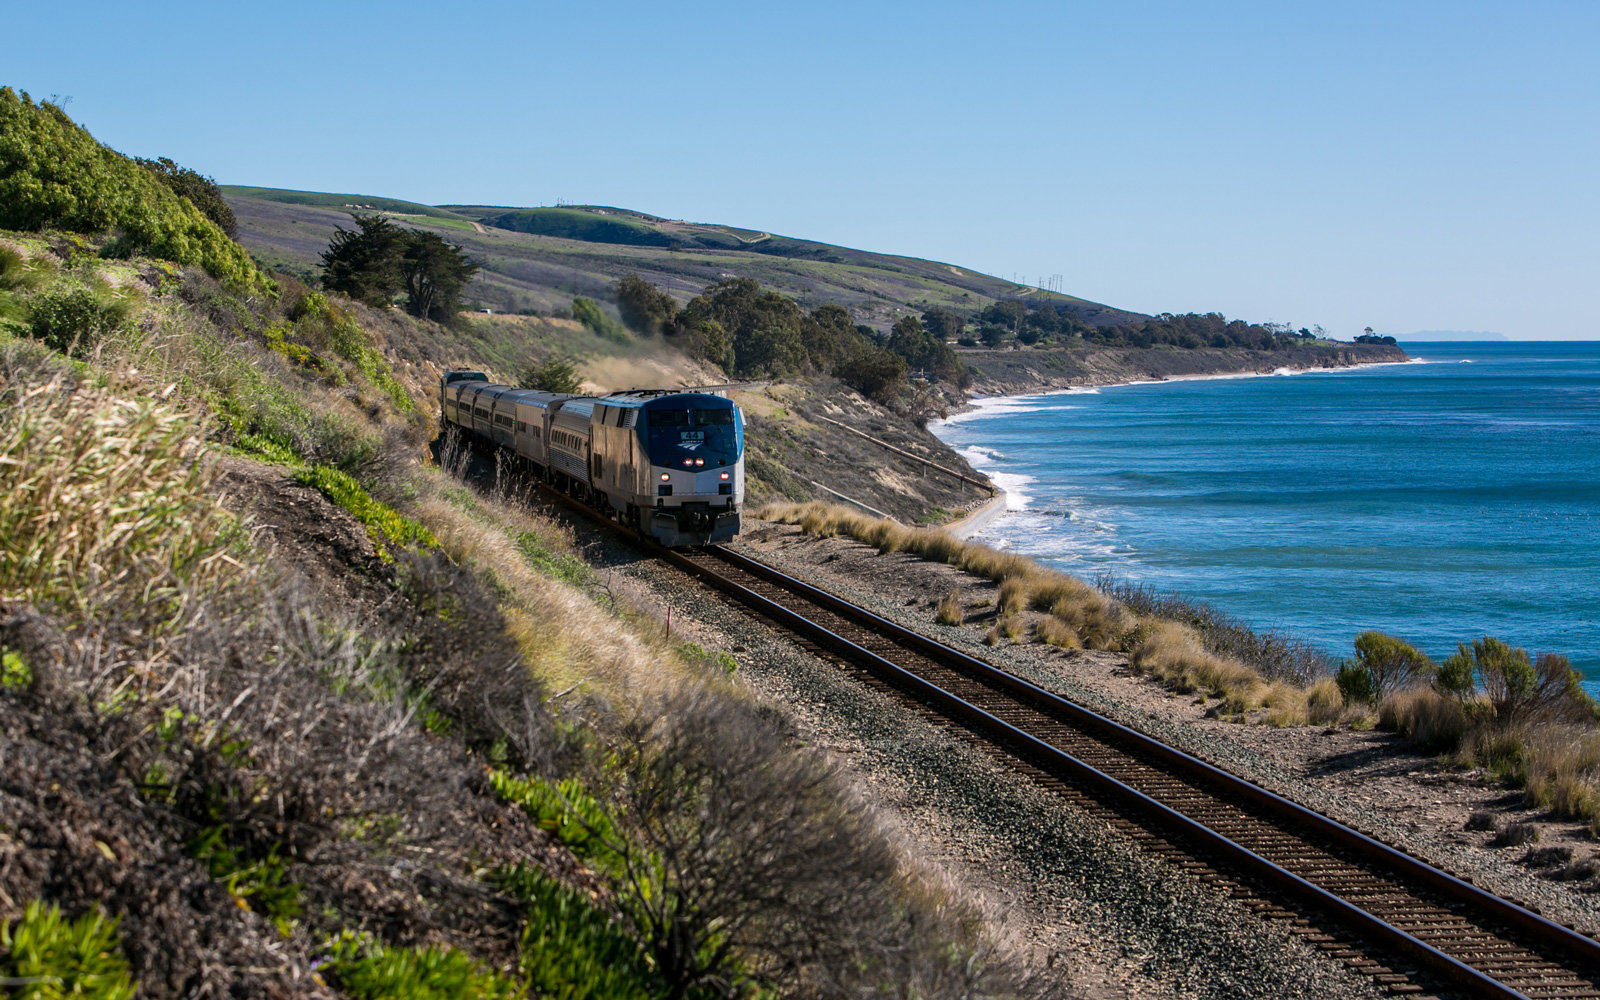 Take one of the most beautiful train rides in the U.S. for $97.